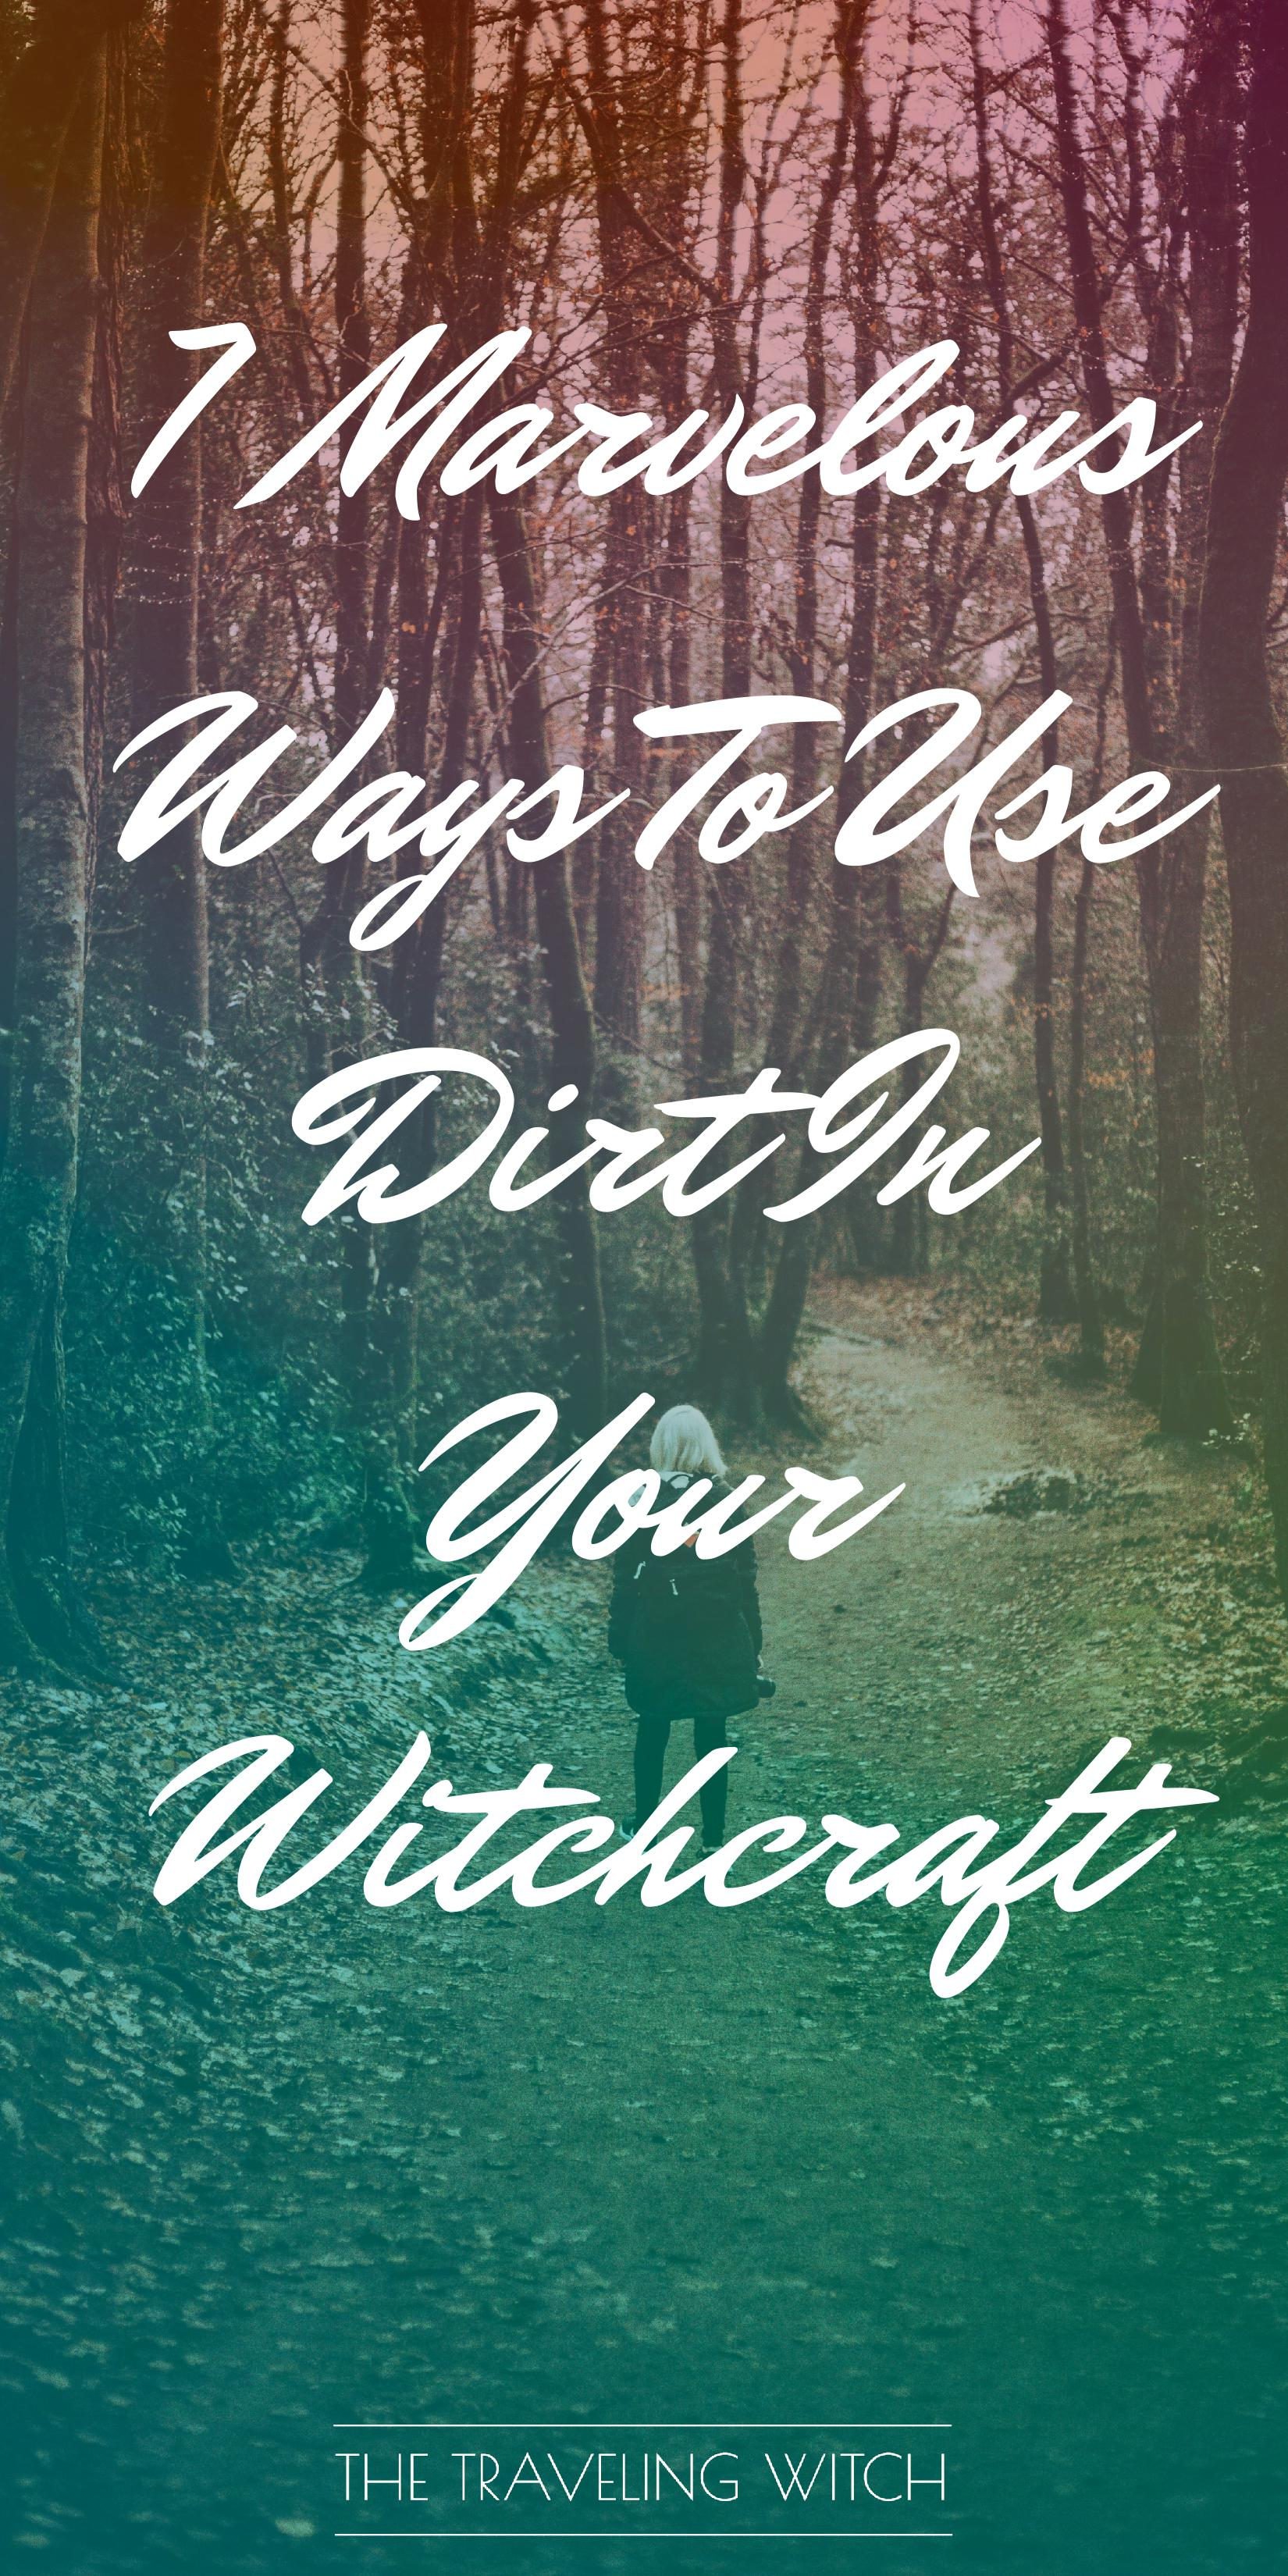 7 Marvelous Ways To Use Dirt In Your Witchcraft by The Traveling Witch